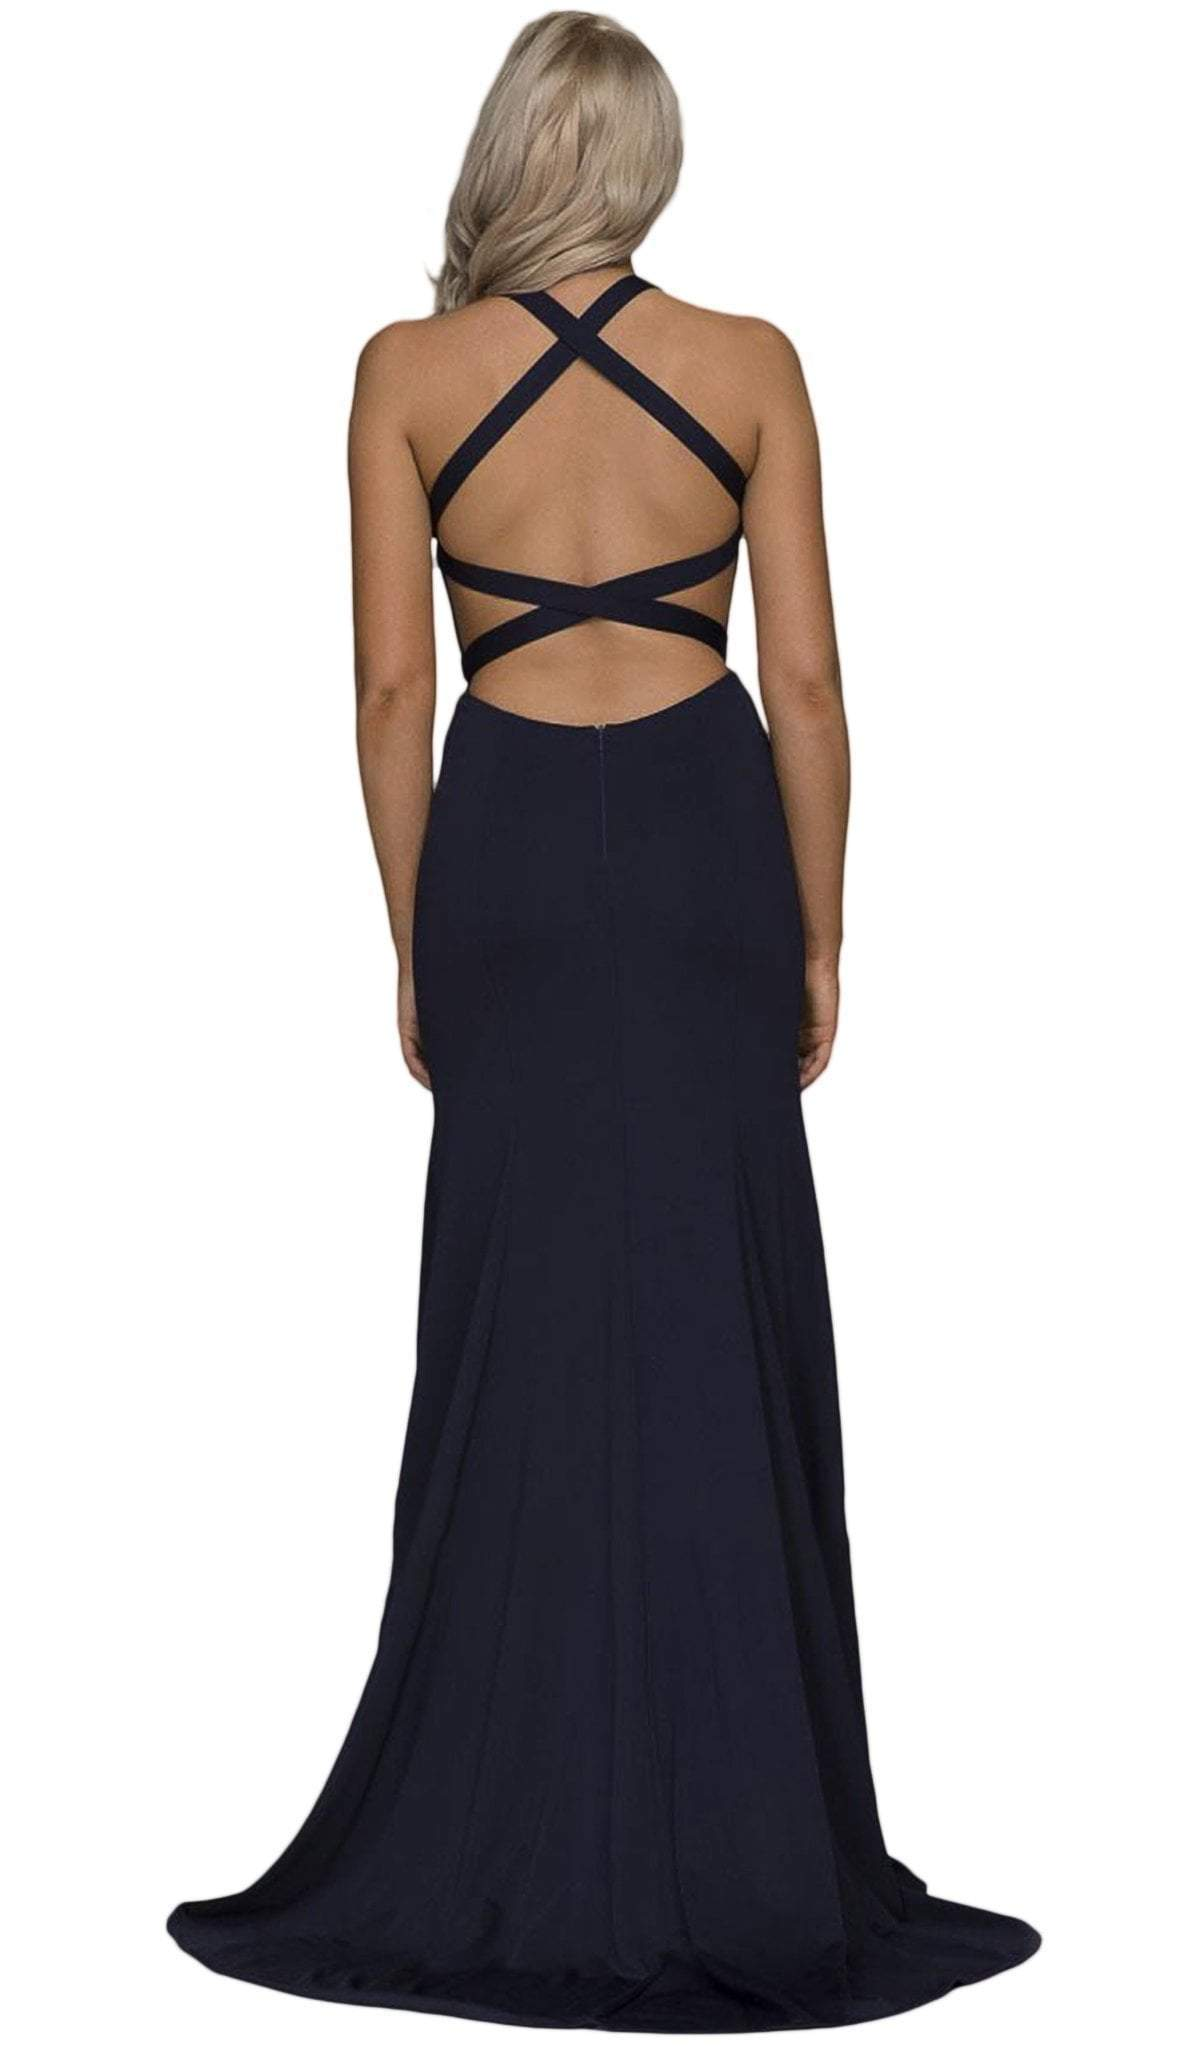 Nox Anabel - Plunging Halter Fitted Dress C023SC